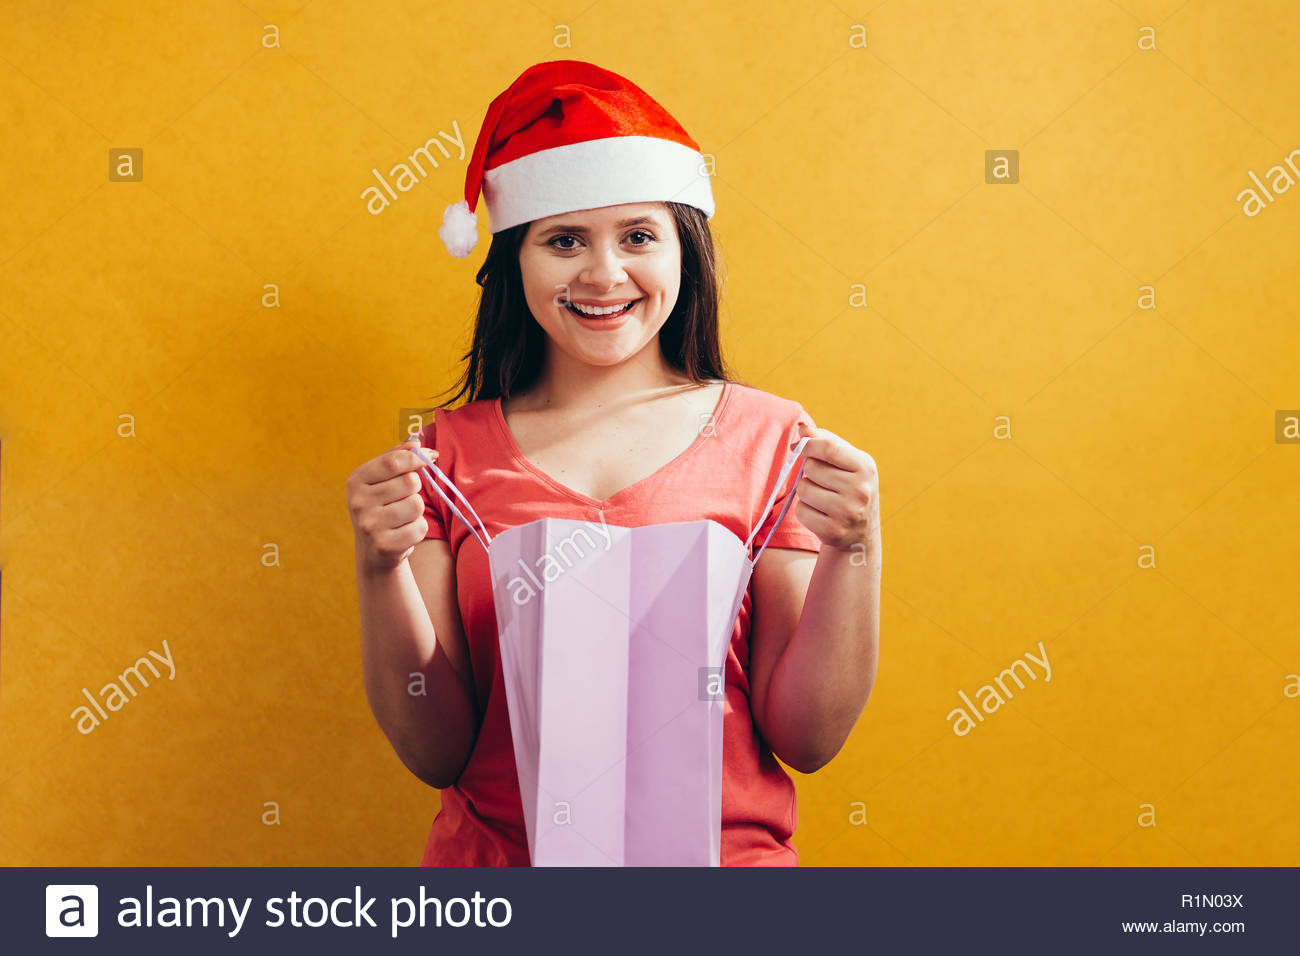 c6e97b19f713e Beautiful woman with a santa hat holding shopping bags on color background